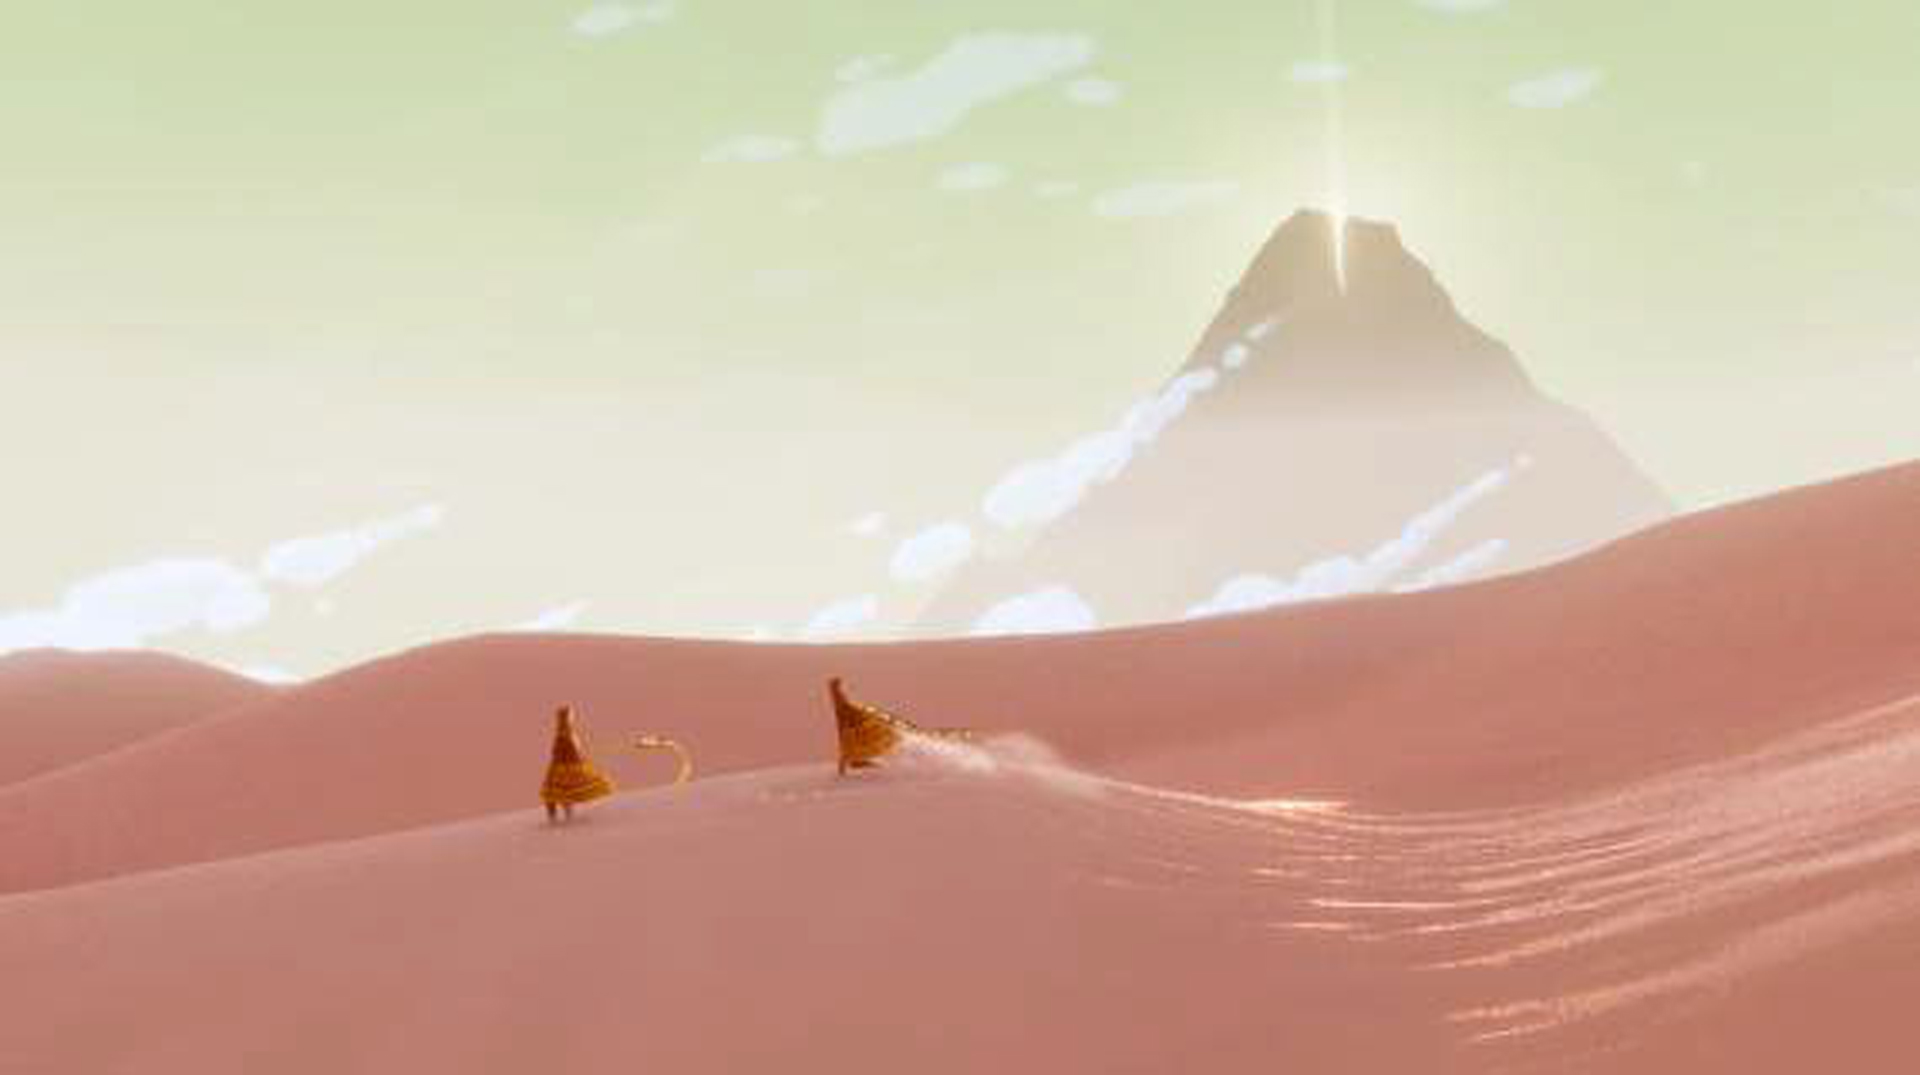 ©, thatgamecompany and Sony Computer Entertainment America LLC